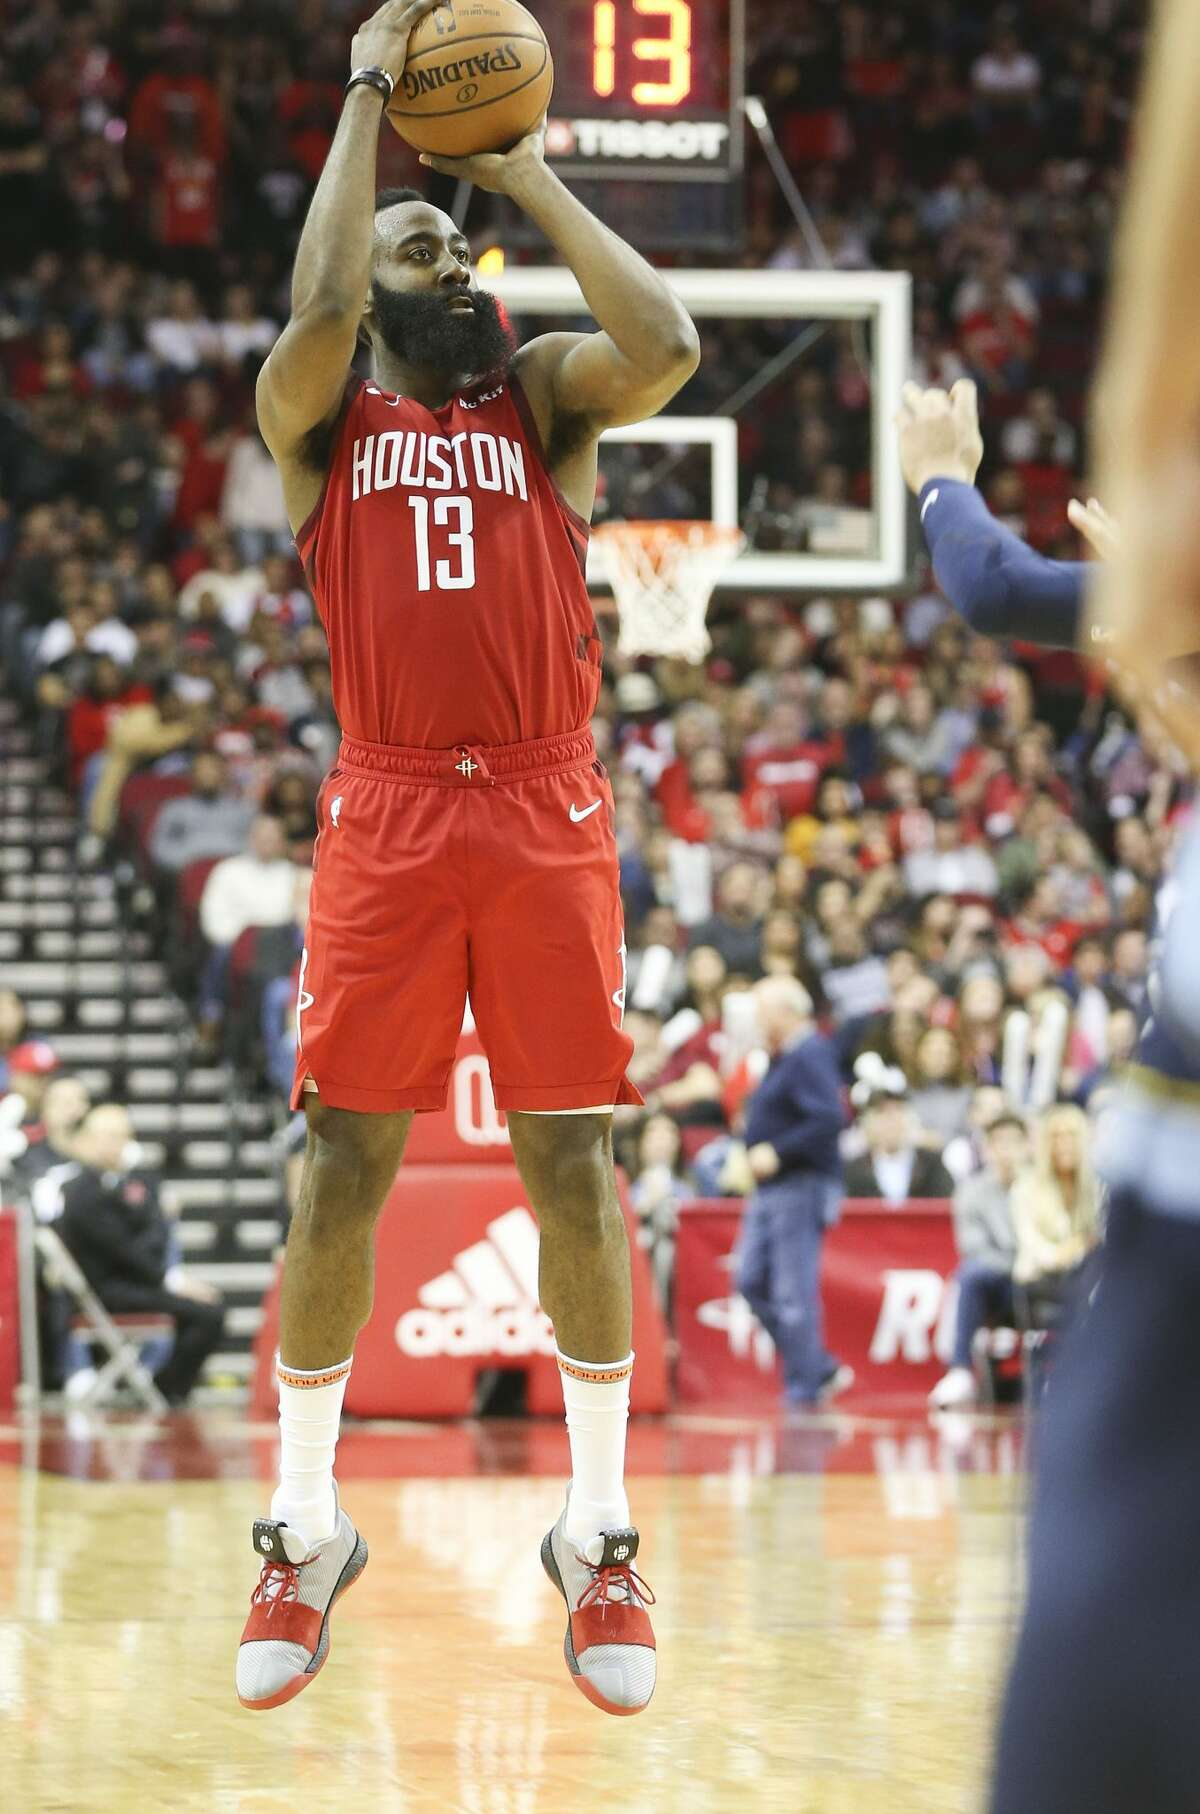 With 13 seconds left on the shot clock, Houston Rockets guard James Harden (13) puts up a three point shot against the Memphis Grizzlies at the Toyota Center on Monday, Dec. 31, 2018 in Houston. Harden scored 43 points and got a a triple in the team's 113-101 win. Houston Rockets host the Memphis Grizzlies at the Toyota Center on Monday, Dec. 31, 2018 in Houston. Rockets won the game 113-101.